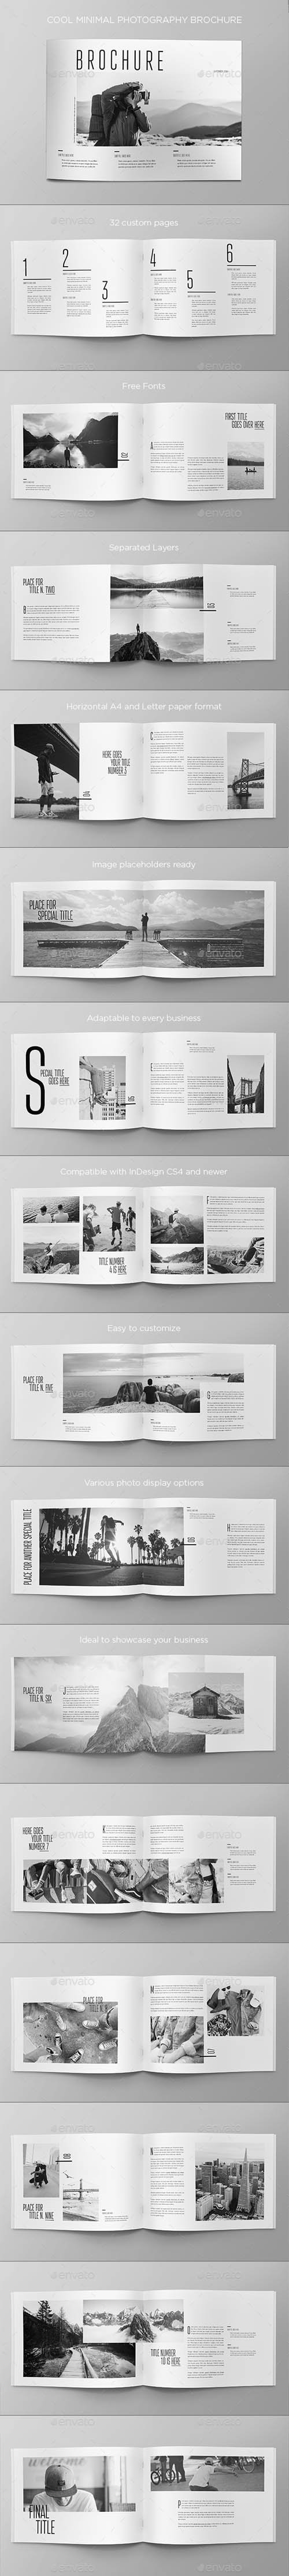 Cool Minimal Photography Brochure 20106581